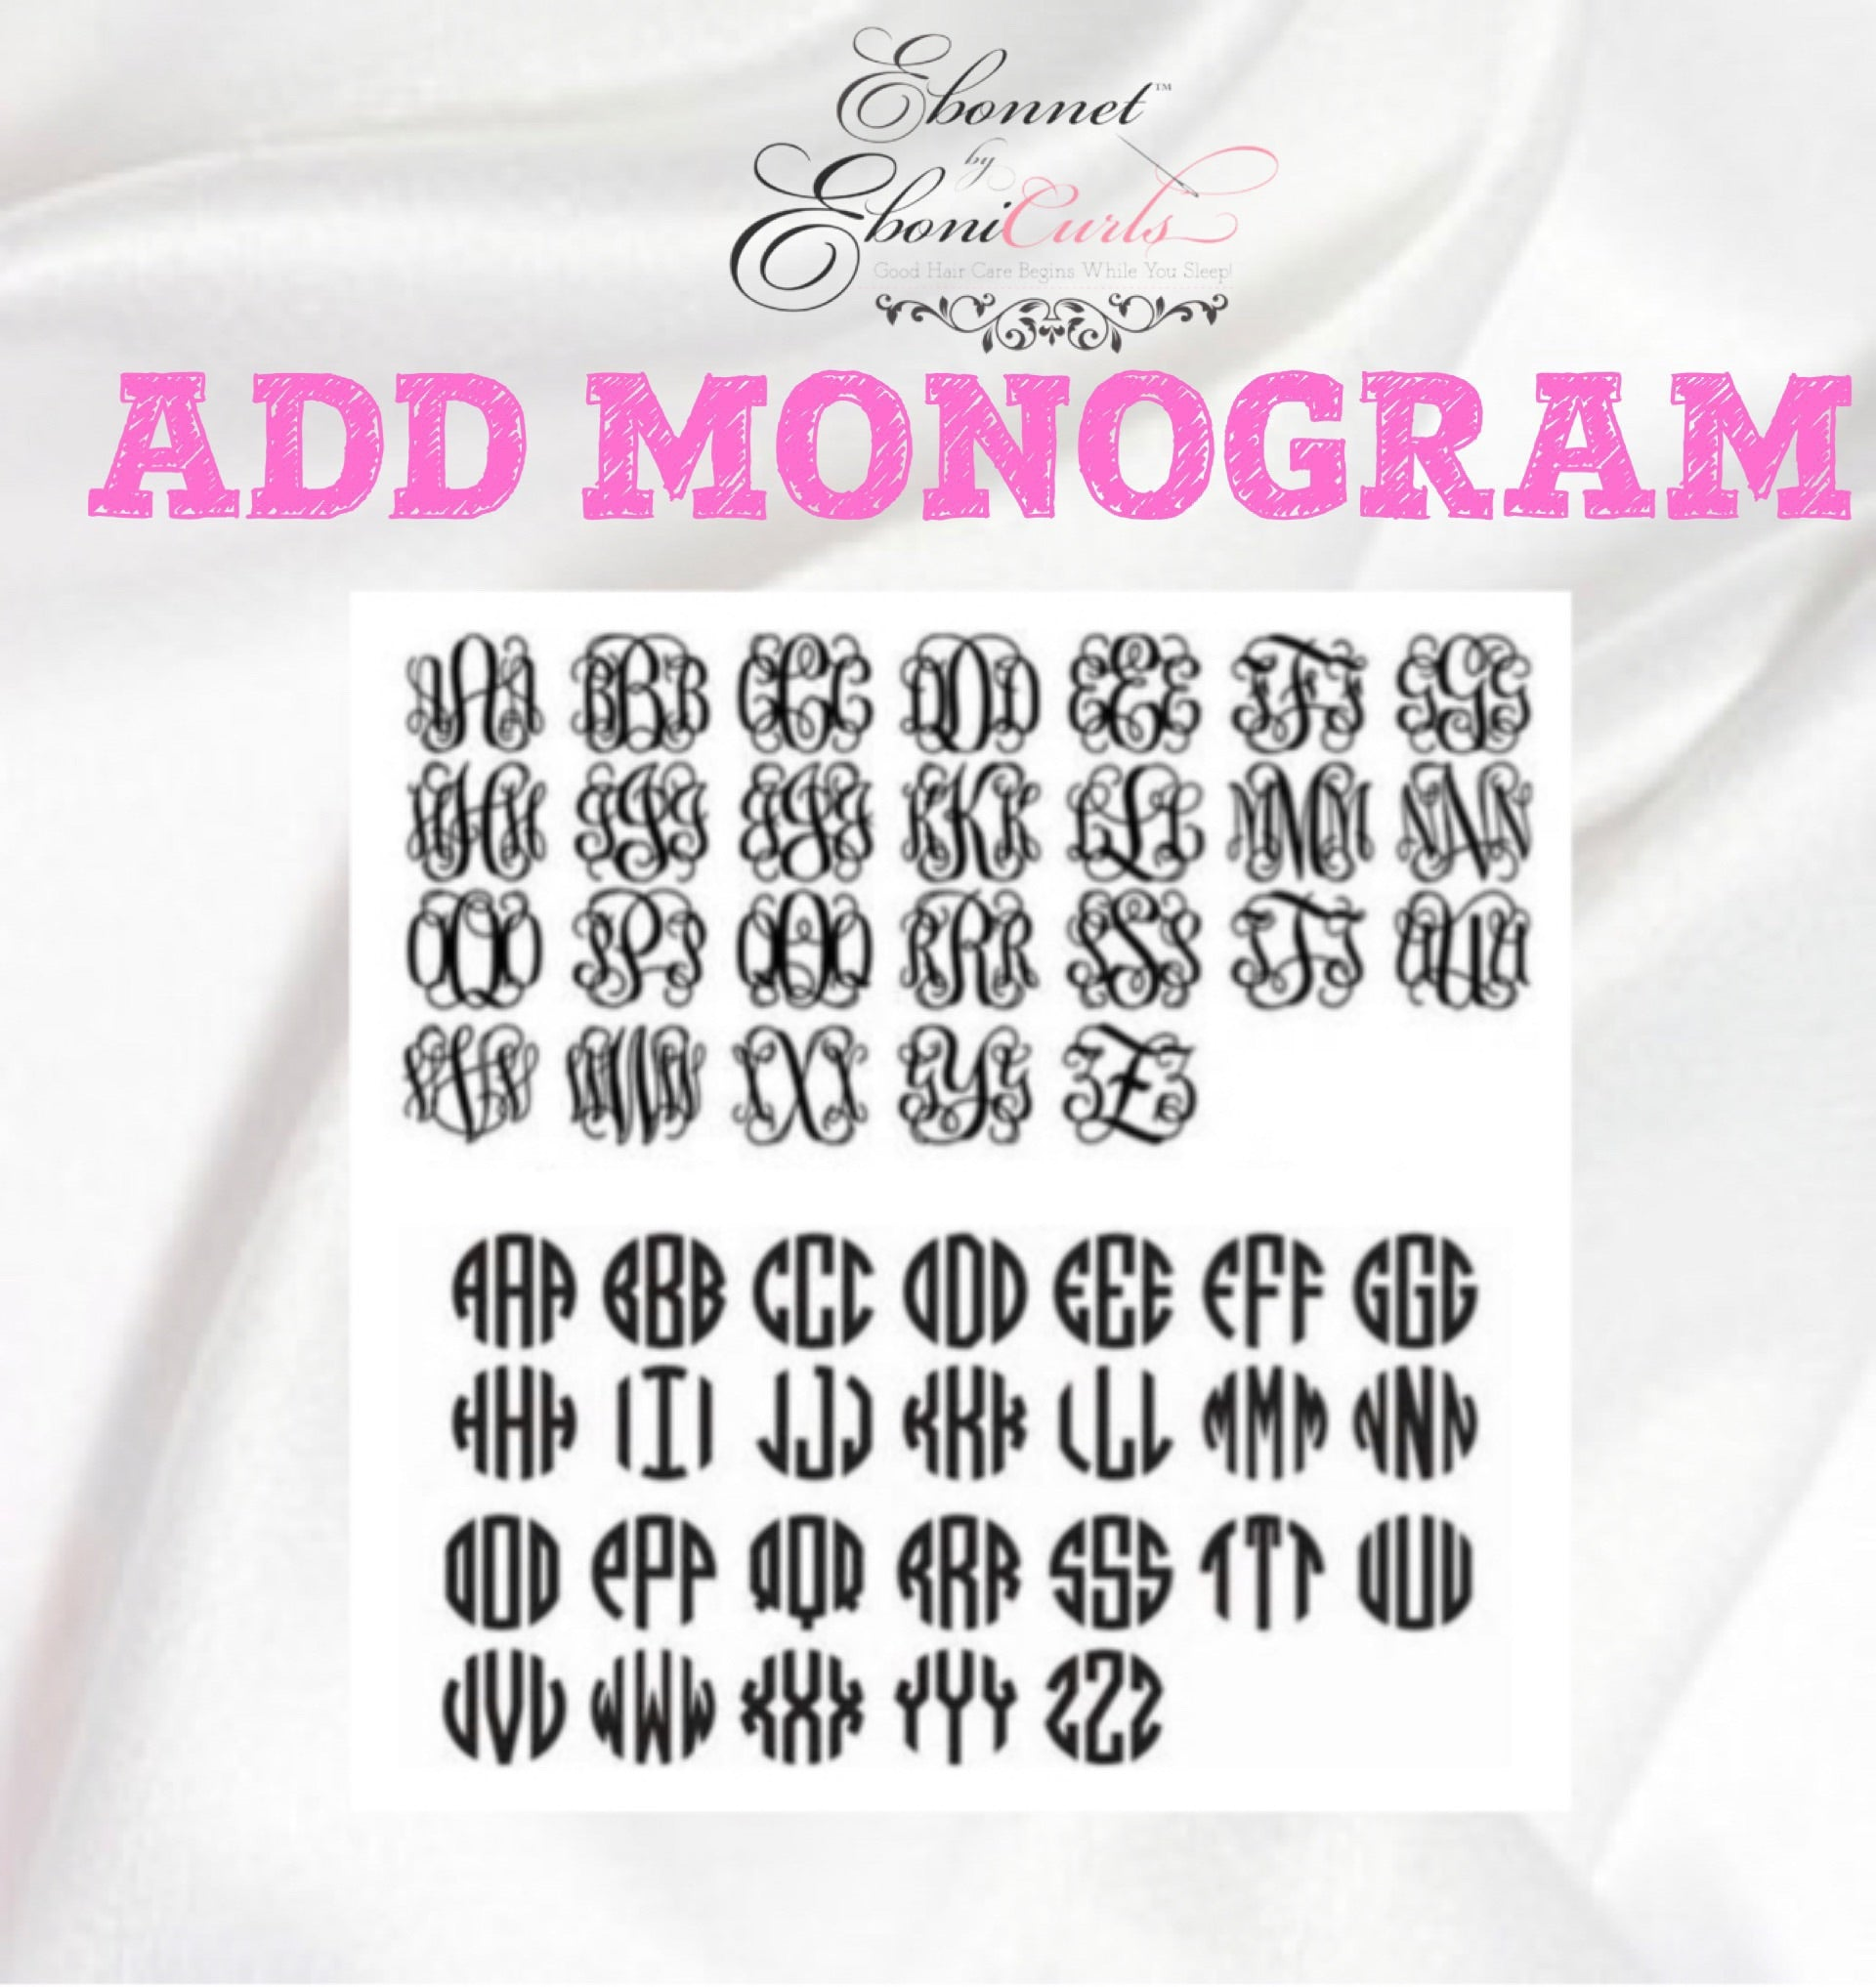 MONOGRAM/ INITIALS ADD